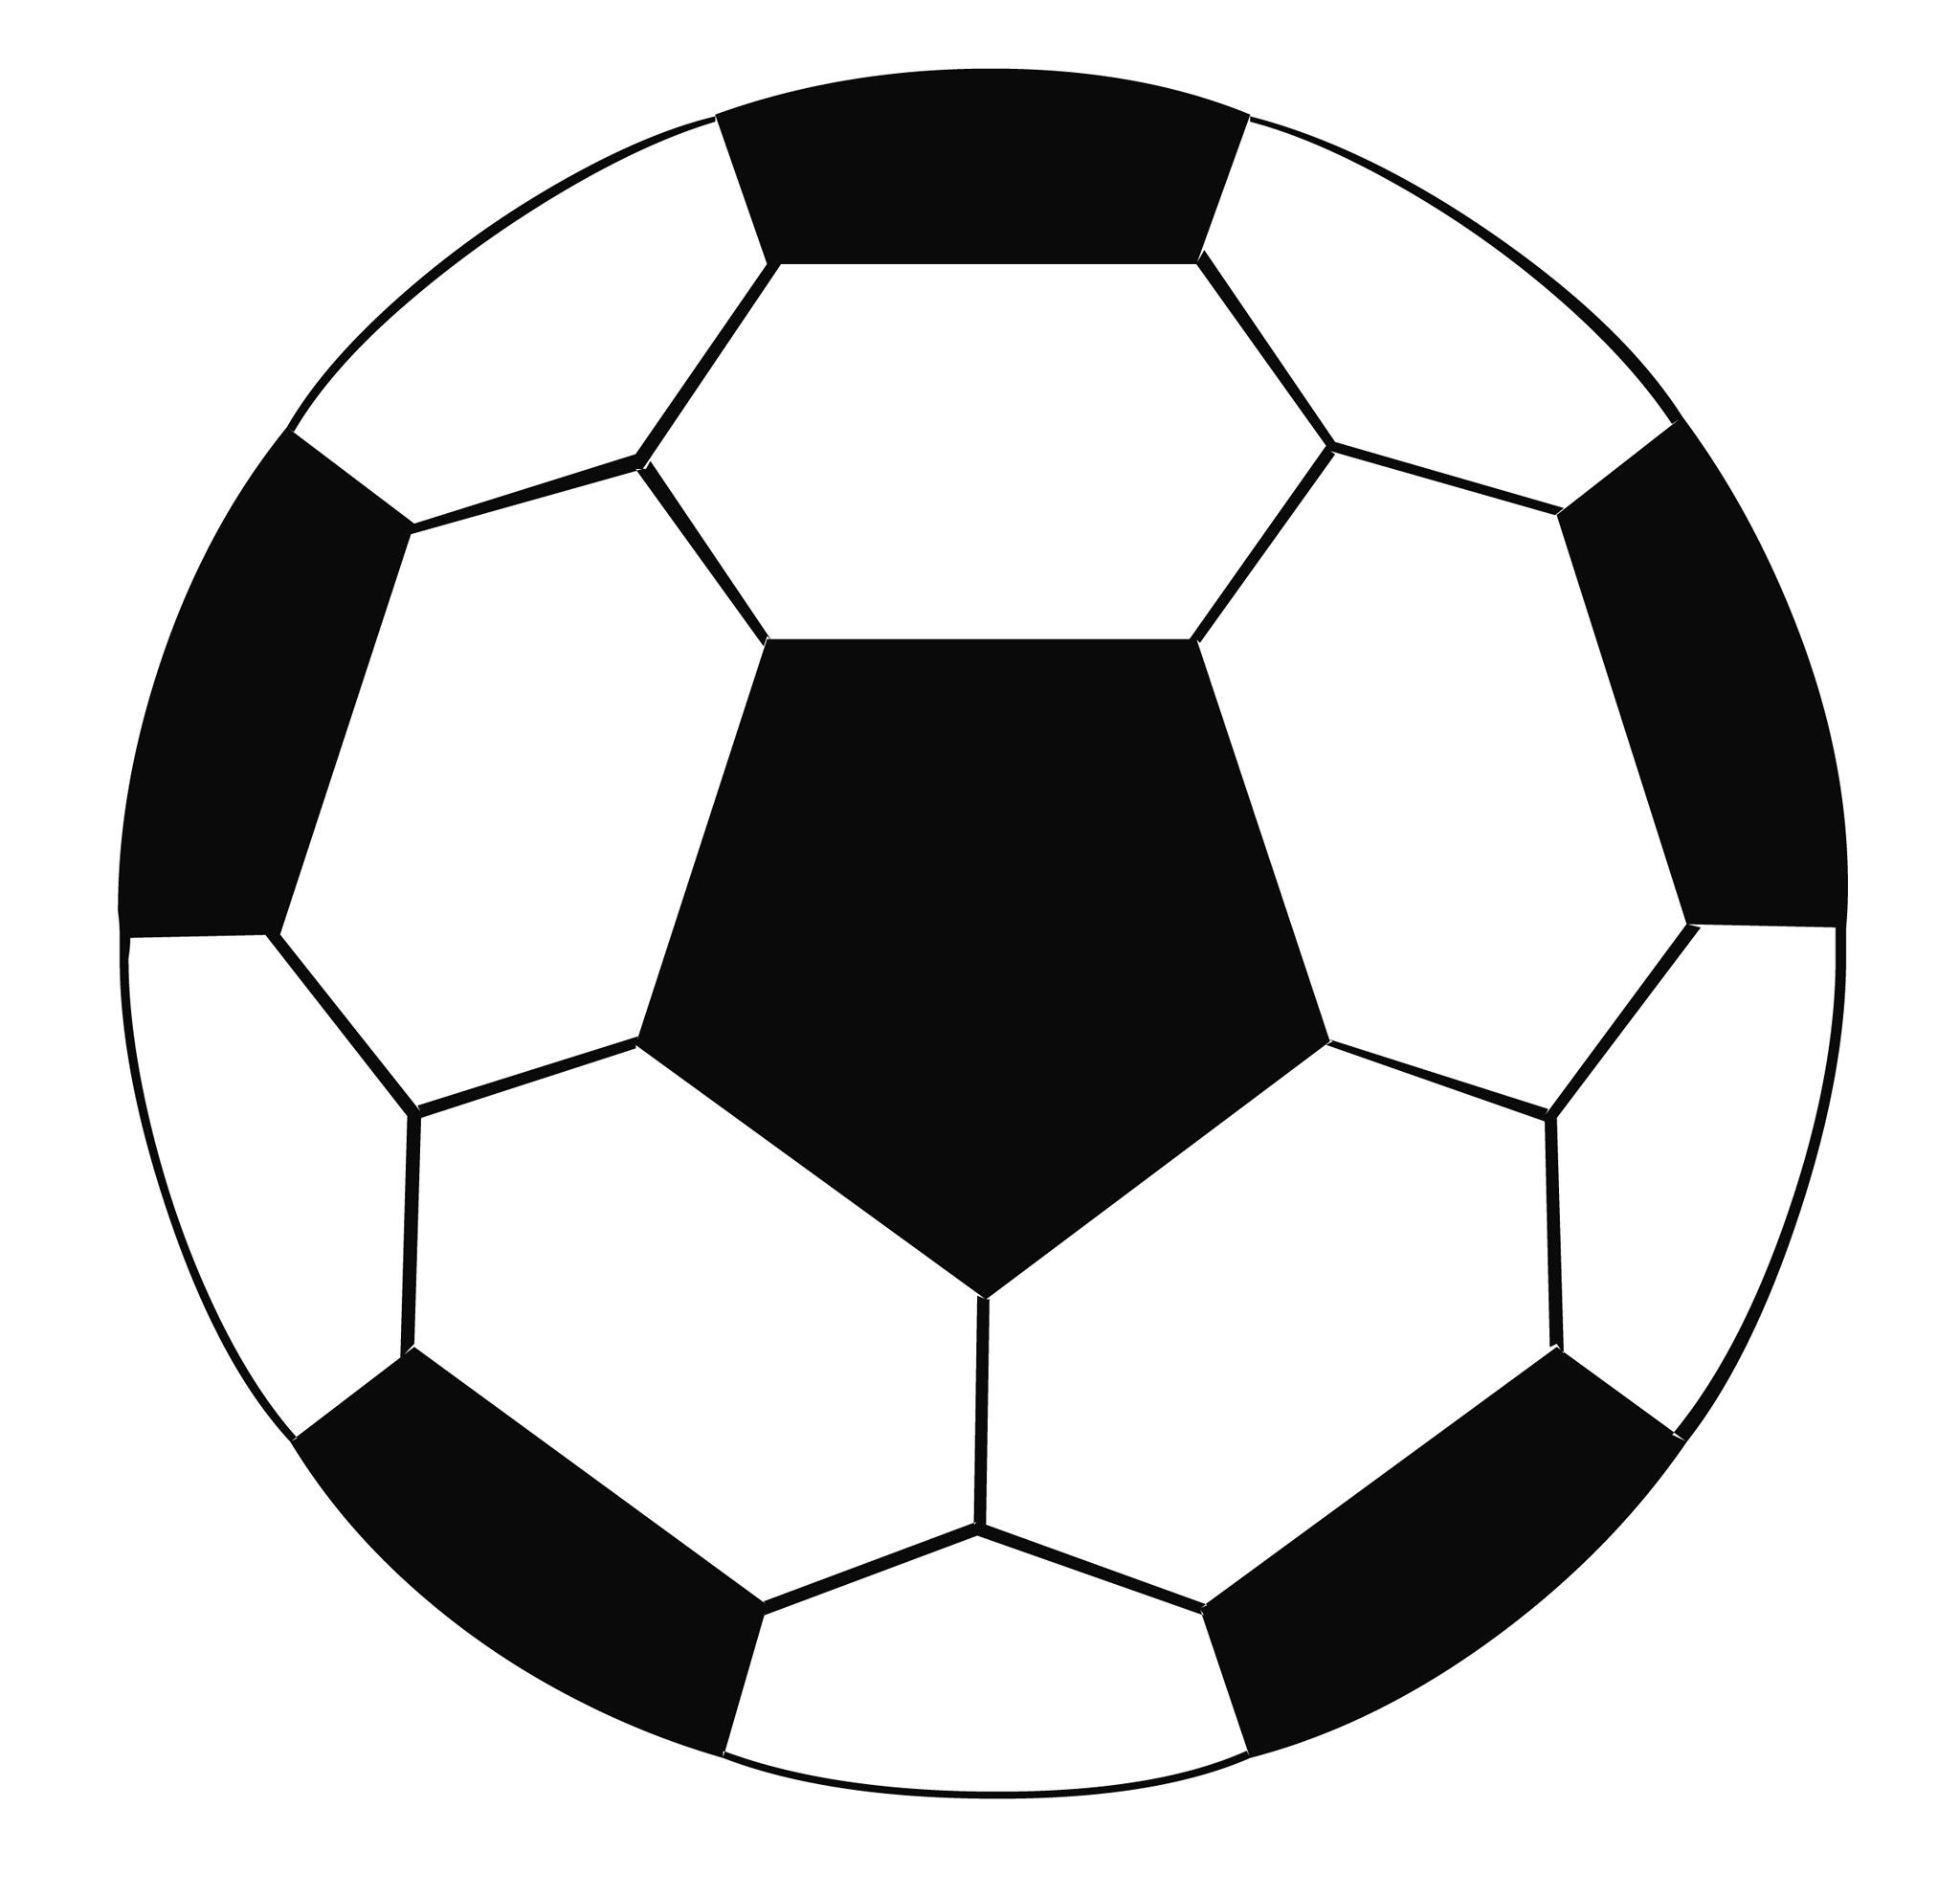 soccer ball clip art free large images pinteres rh pinterest com clipart soccer ball free clip art soccer ball edit